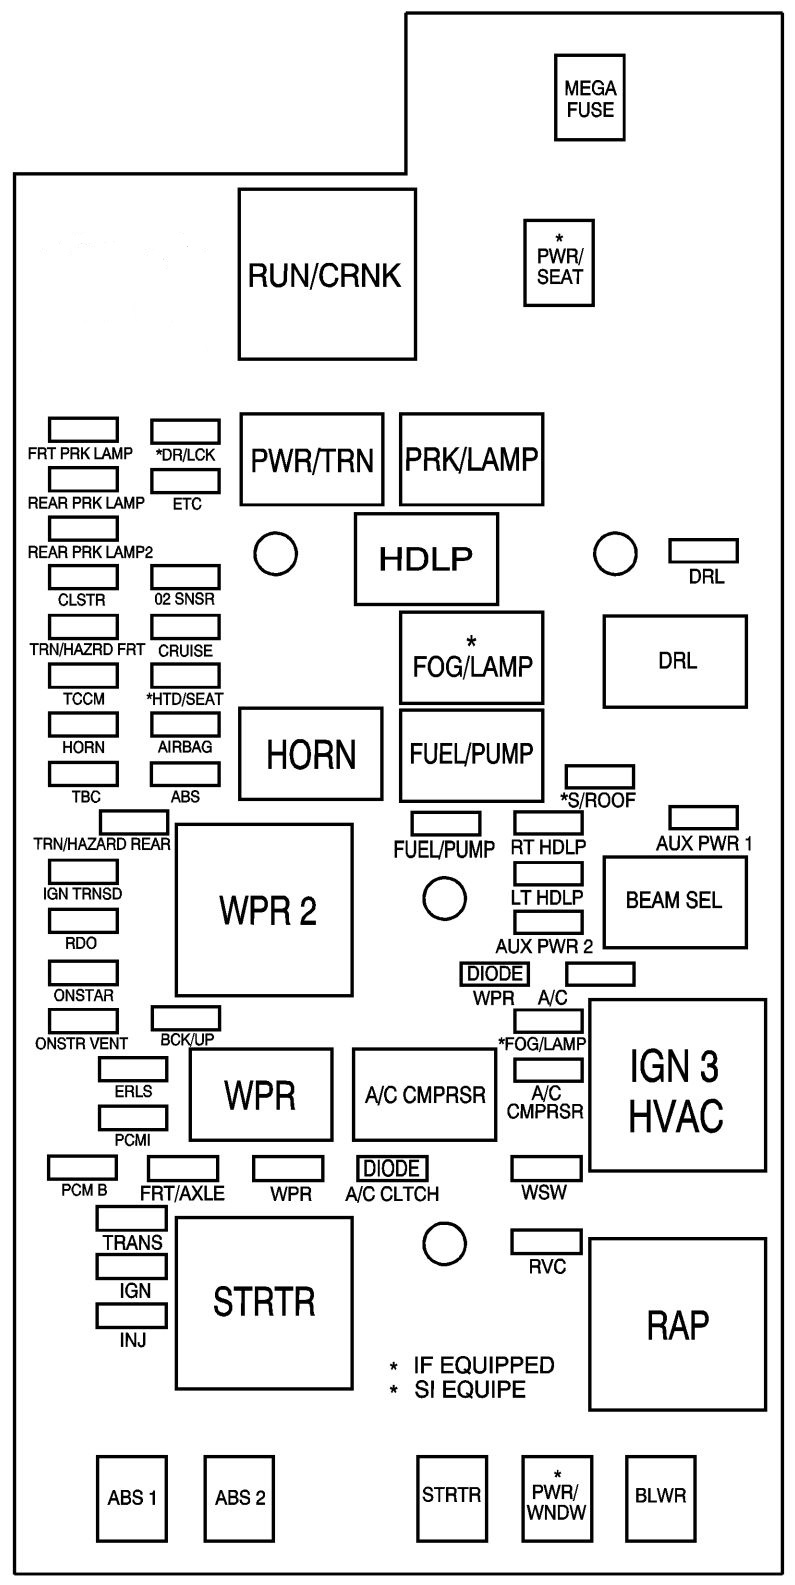 medium resolution of 2007 chevy hhr fuse box diagram wiring diagram source dodge charger fuse box diagram 2008 hhr